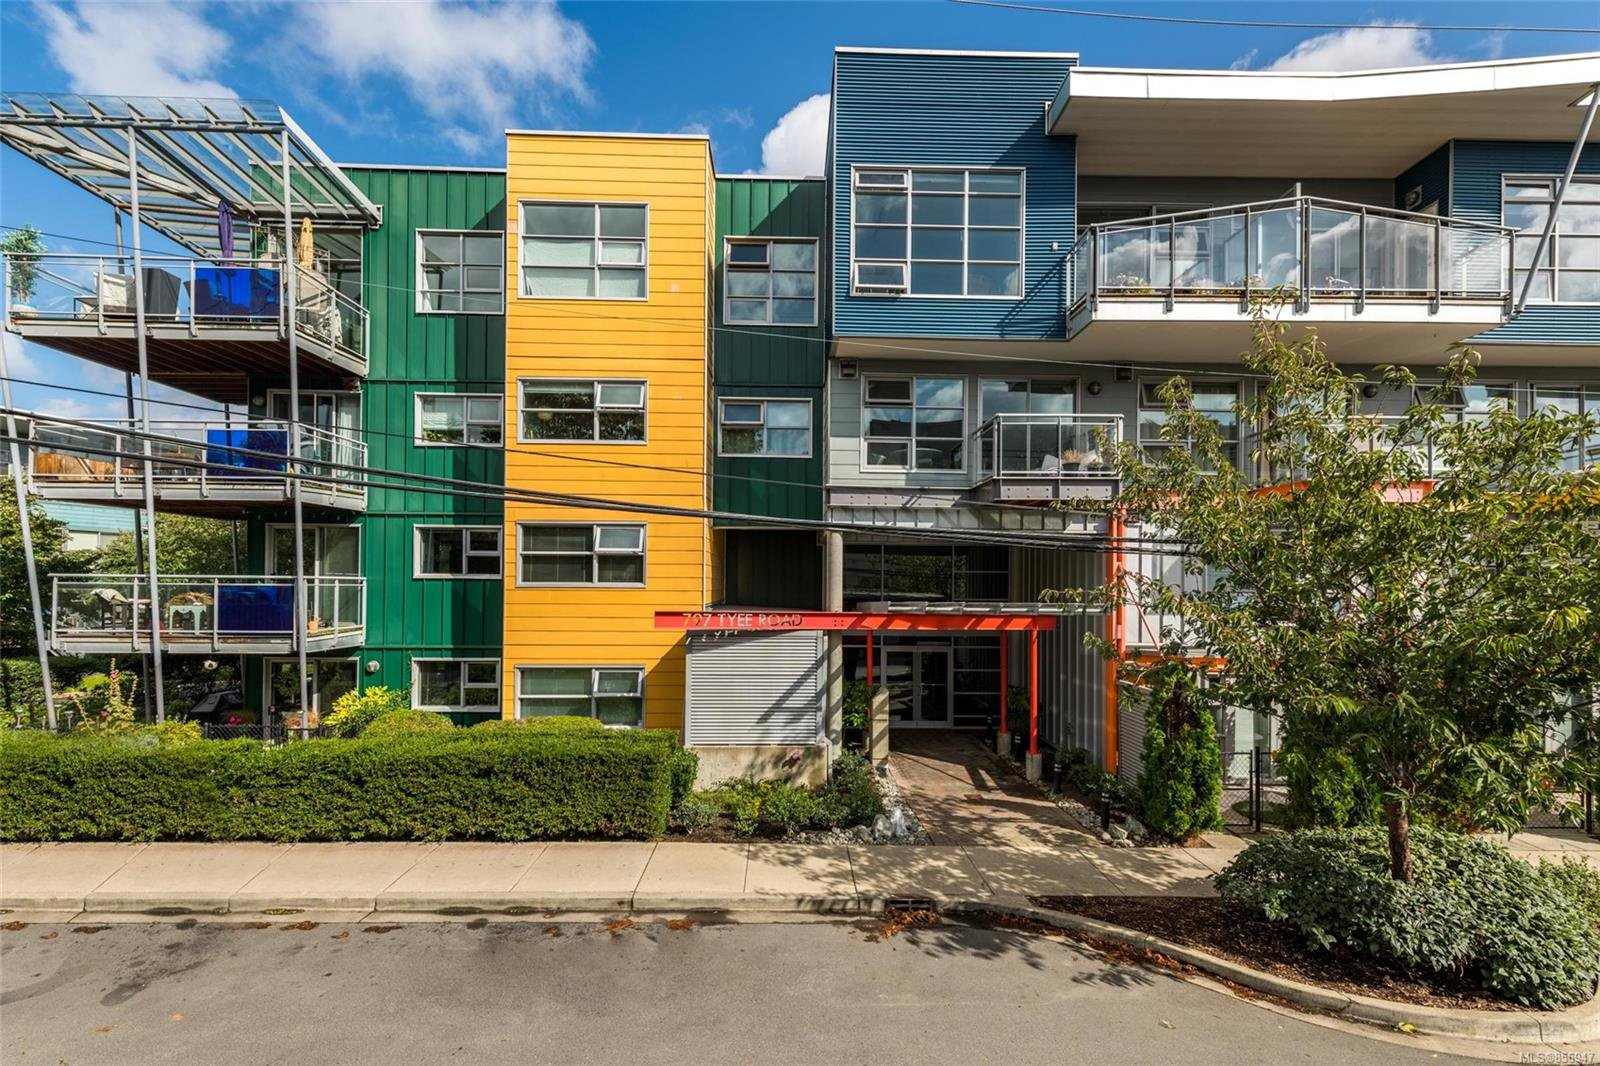 Main Photo: 413 797 Tyee Rd in : VW Victoria West Condo for sale (Victoria West)  : MLS®# 856947